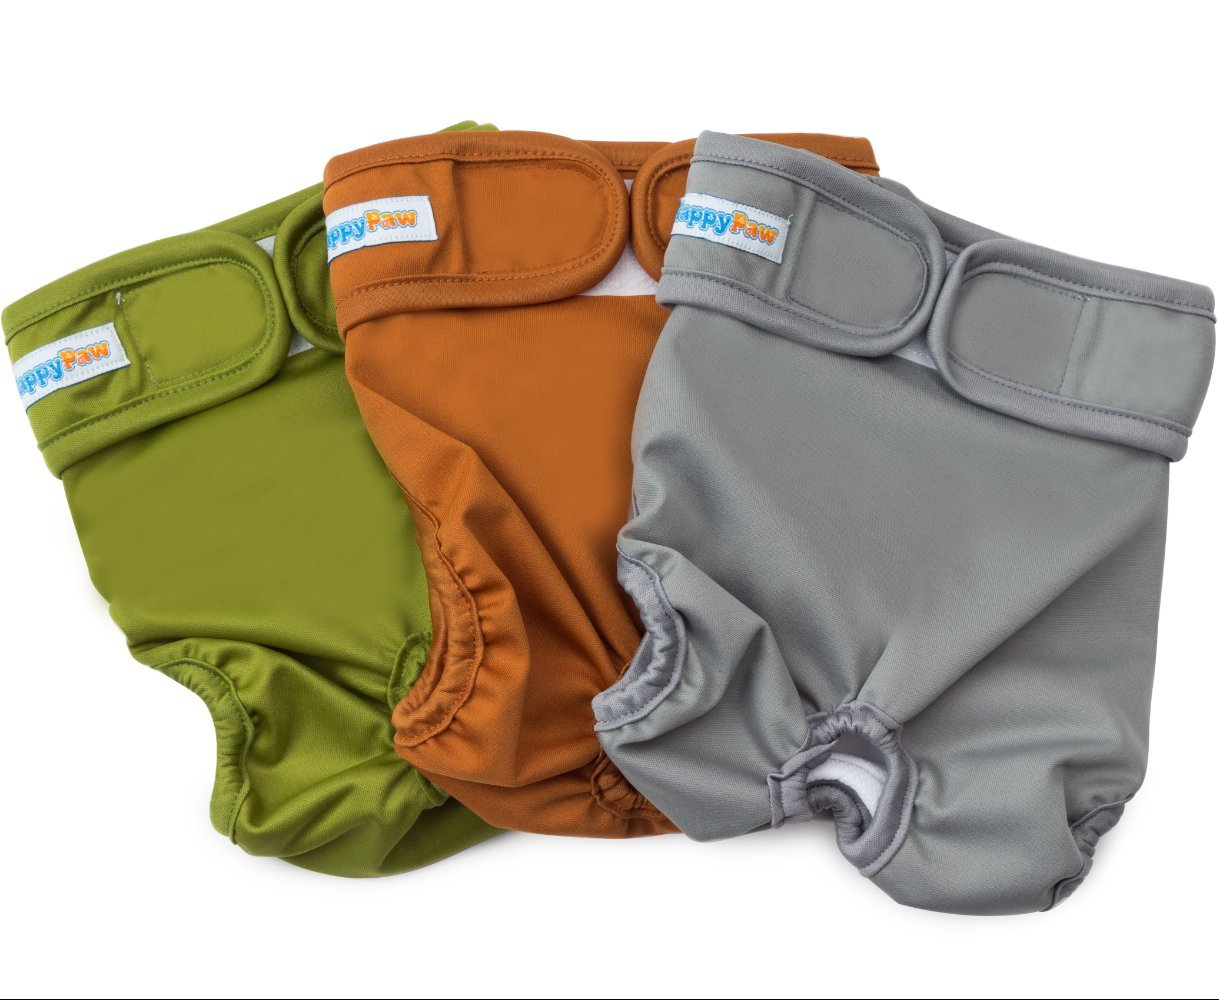 HappyPaw Reusable Washable Dog Diapers - Size Large - (3 Pack) - Durable Dog Wraps for Both Male and Female Dogs - Premium Quality